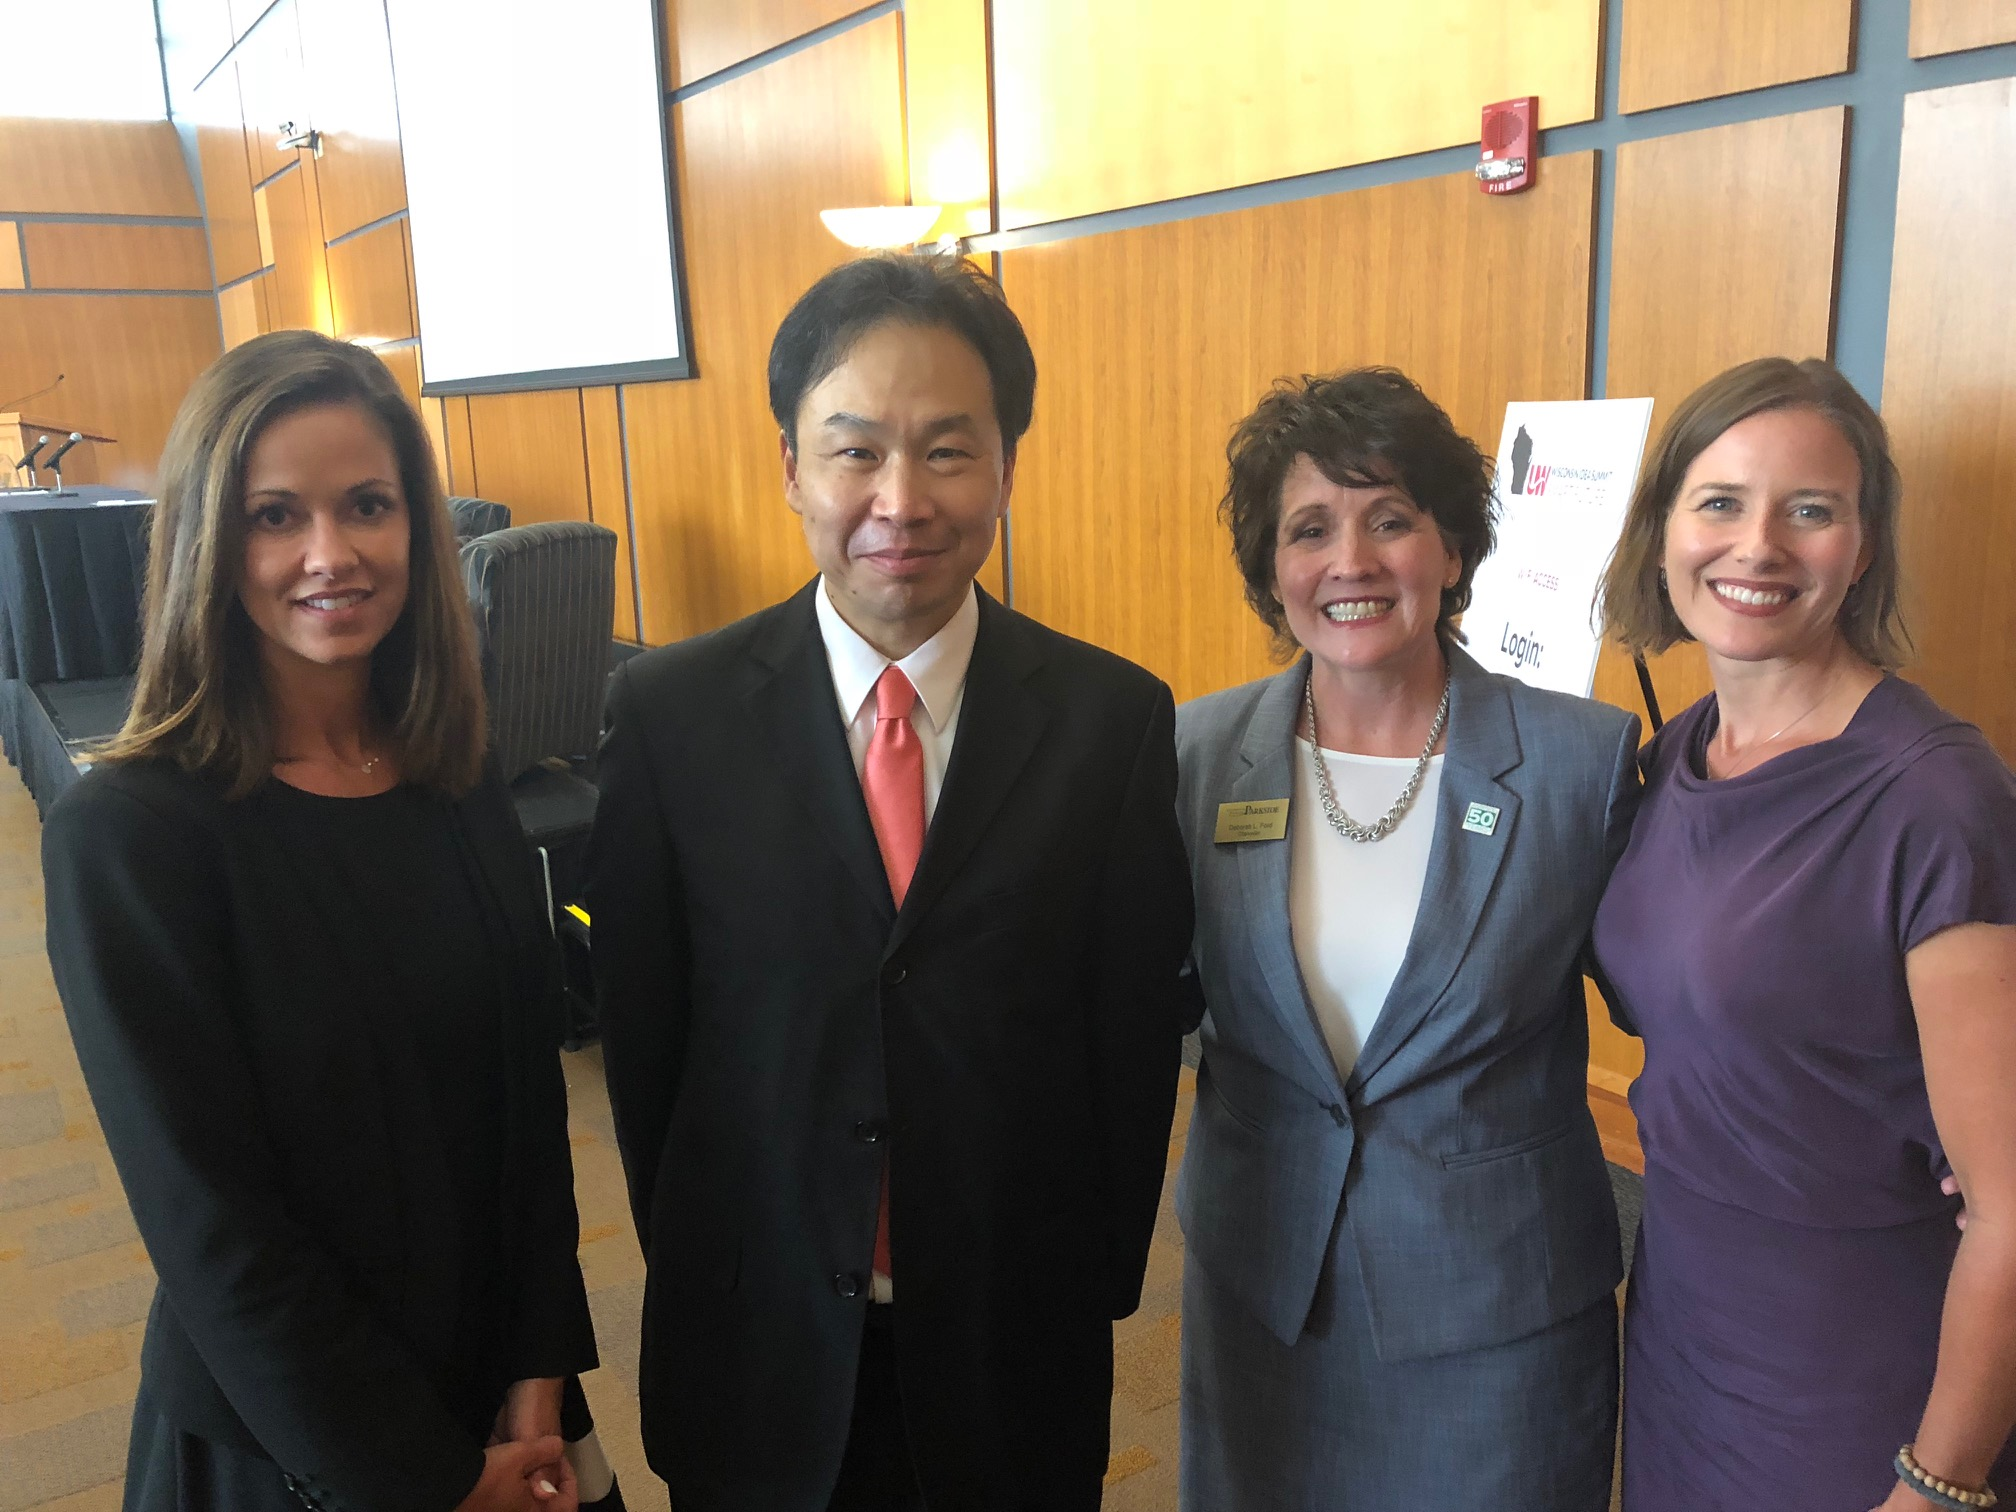 Lisa Roy, Alan Yeung, Debbie Ford, Chelsea Collier